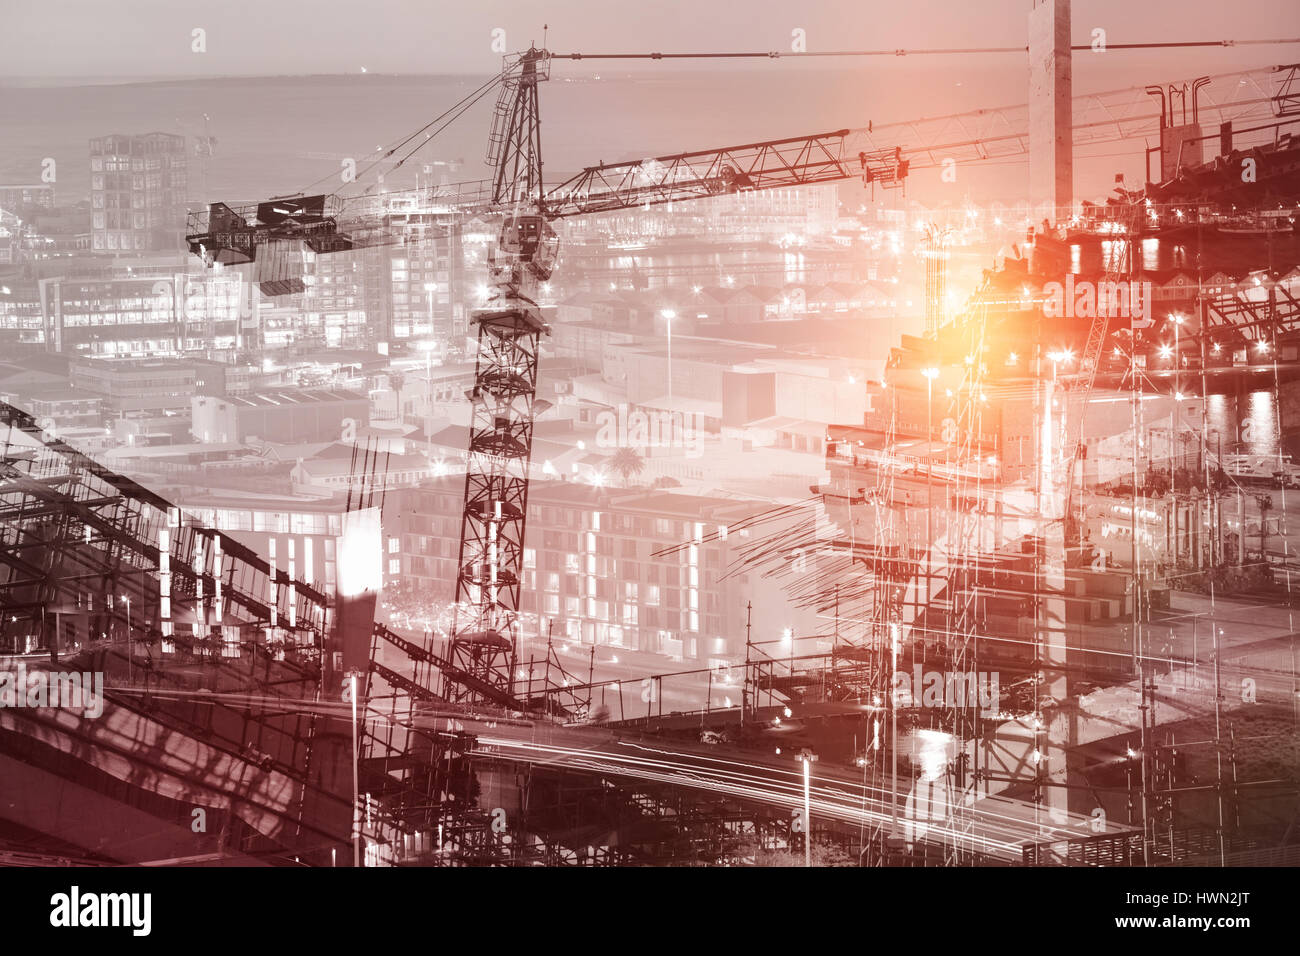 Work in progress in the city against illuminated buildings in city - Stock Image